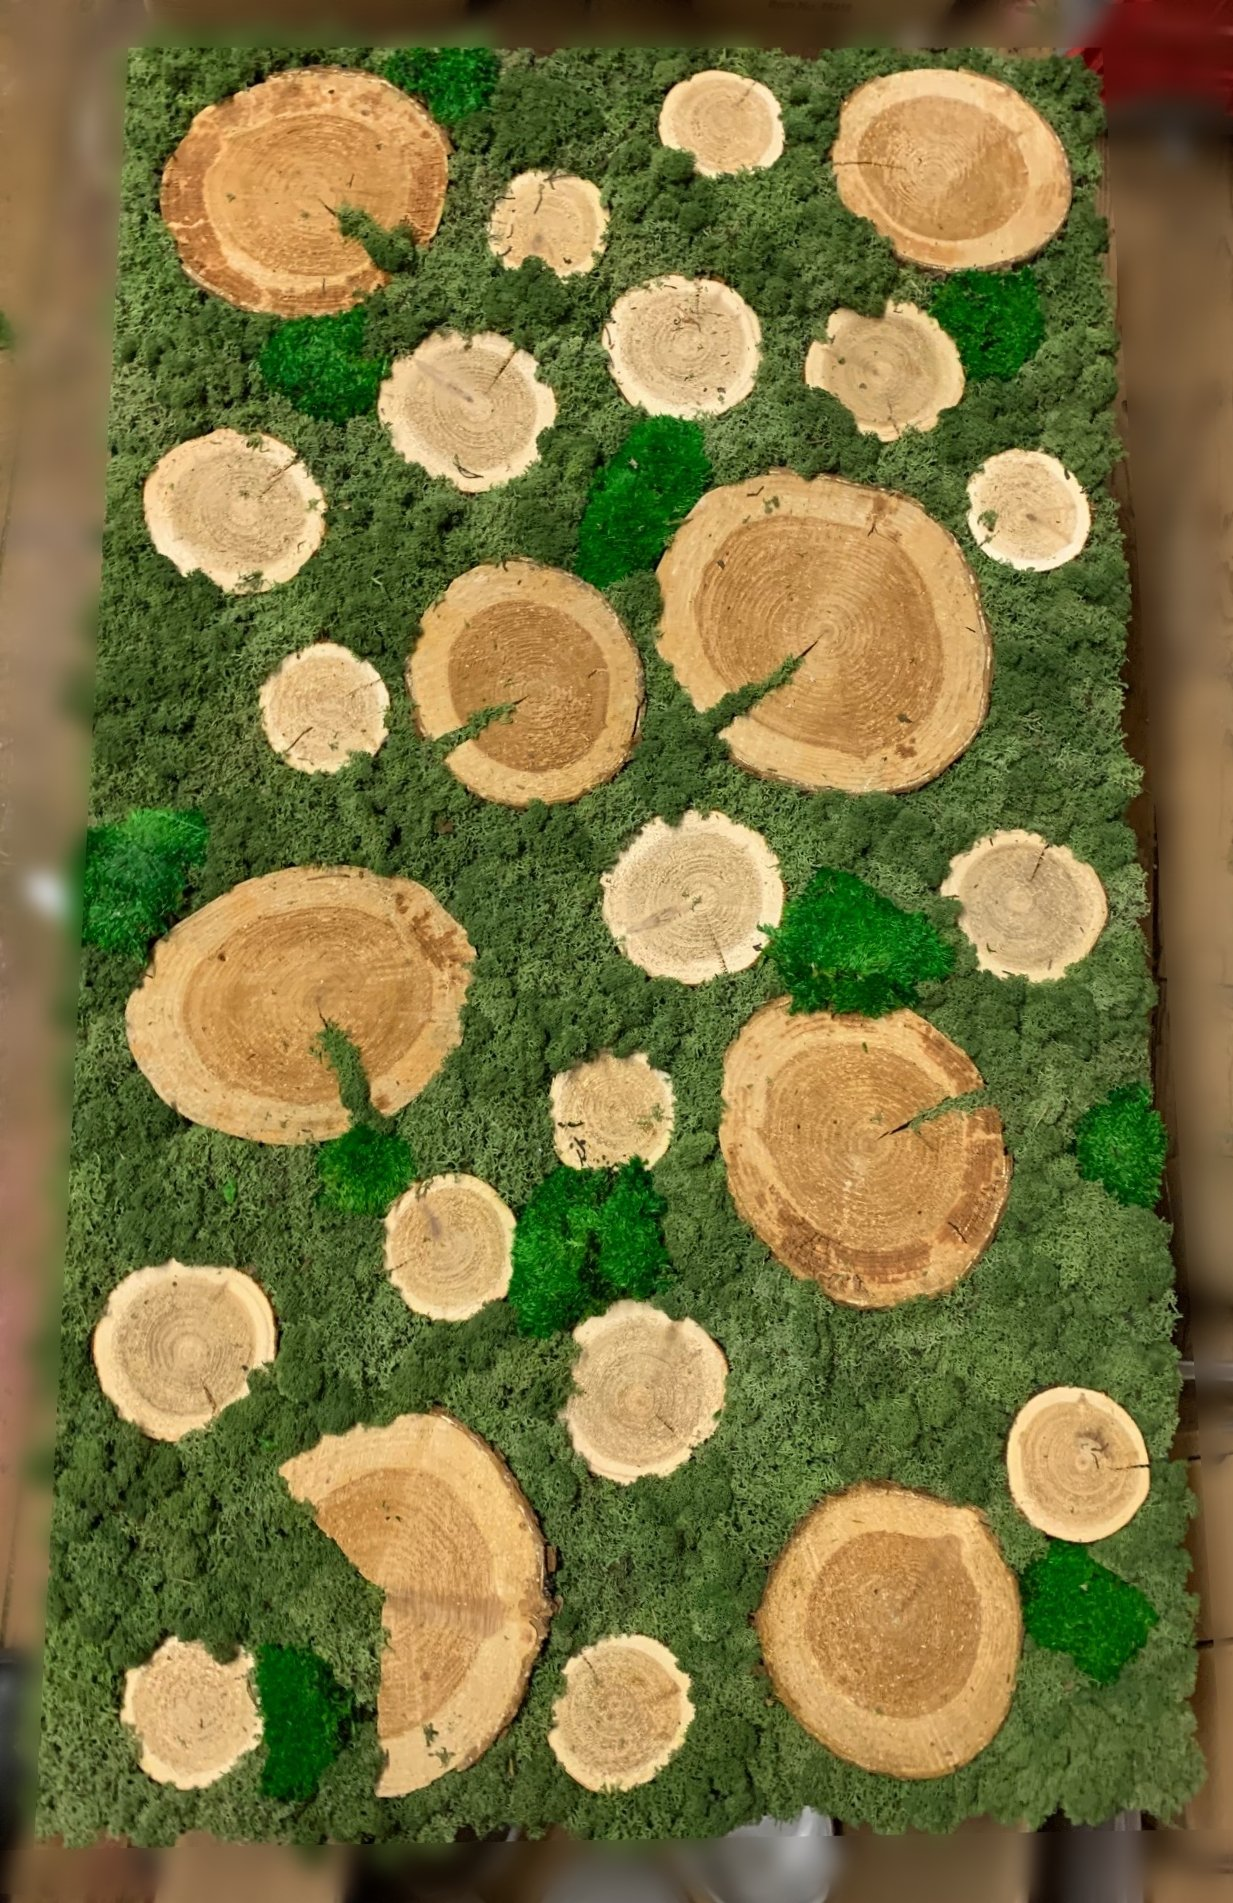 Artificial Green Wall art panel with preserved moss and tree wood cookie accents